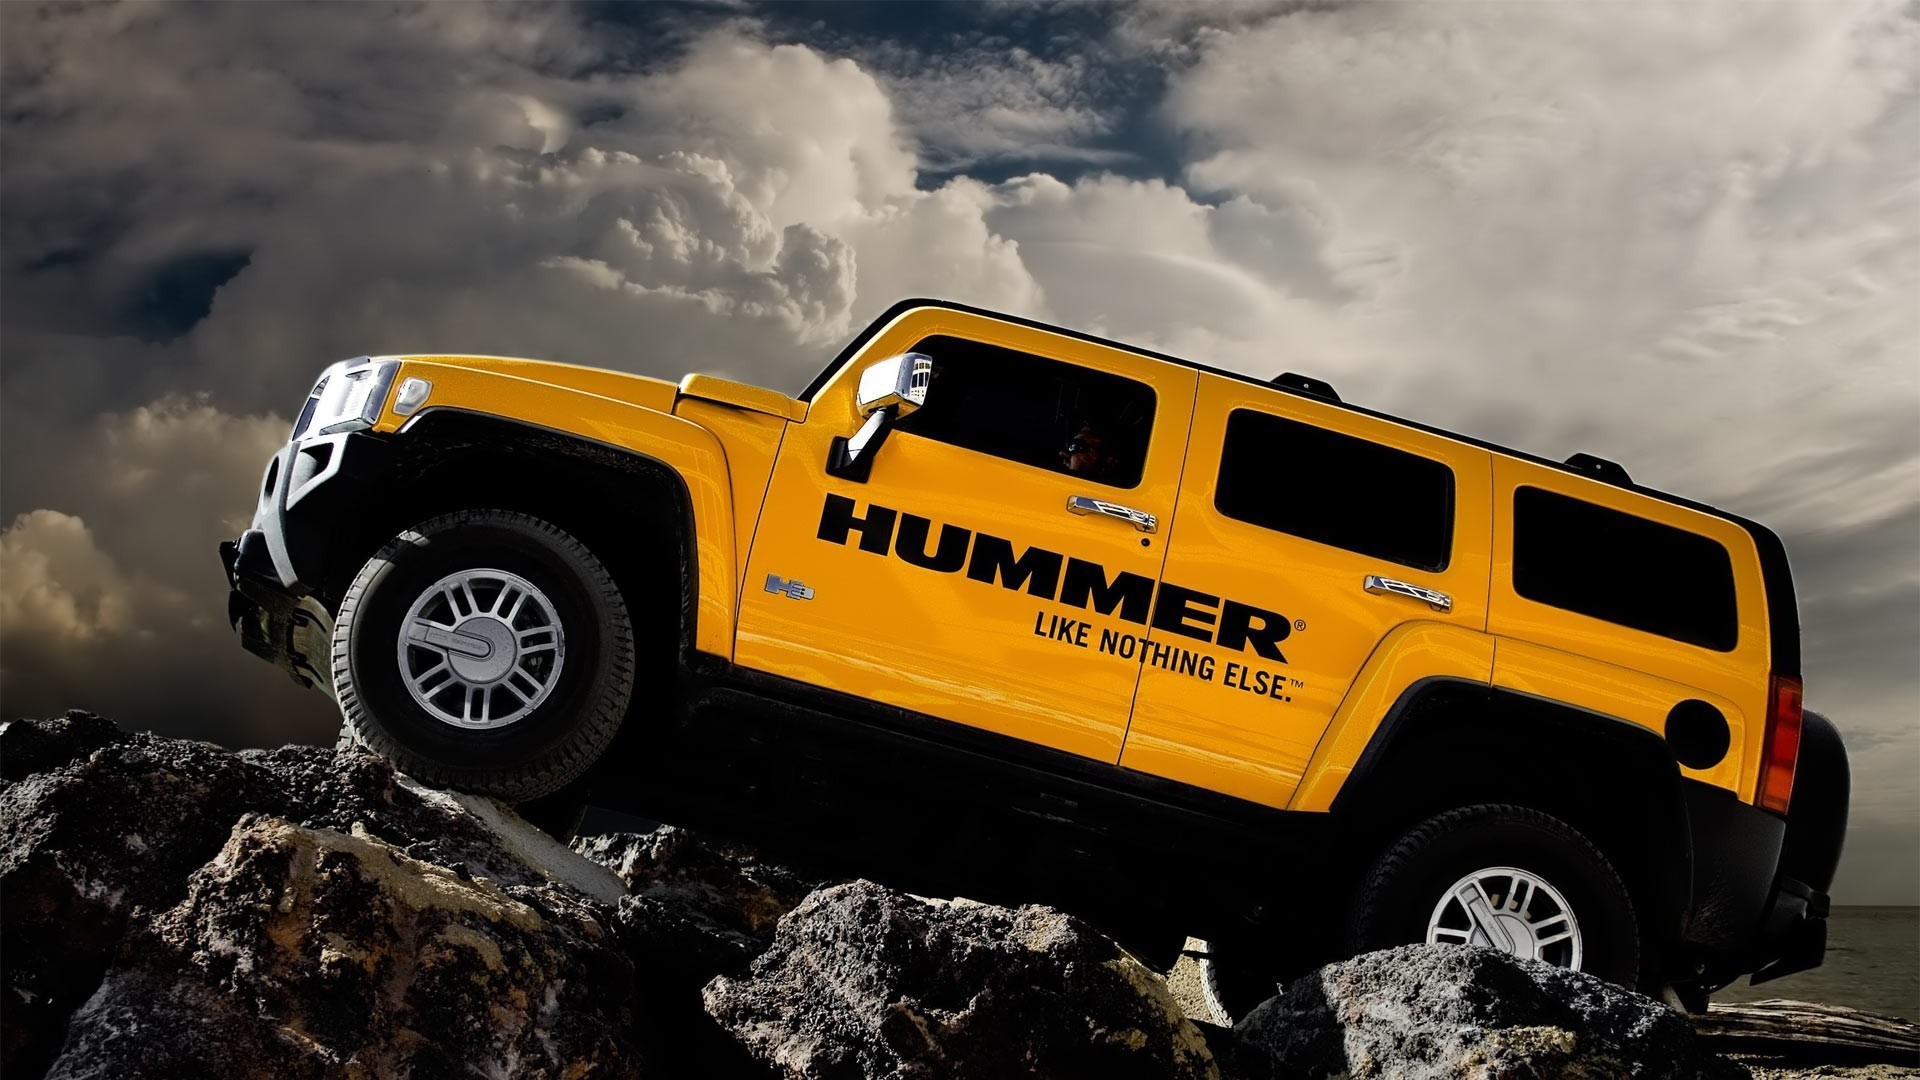 Res: 1920x1080, Get the latest hummer, h3, auto news, pictures and videos and learn all  about hummer, h3, auto from wallpapers4u.org, your wallpaper news source.